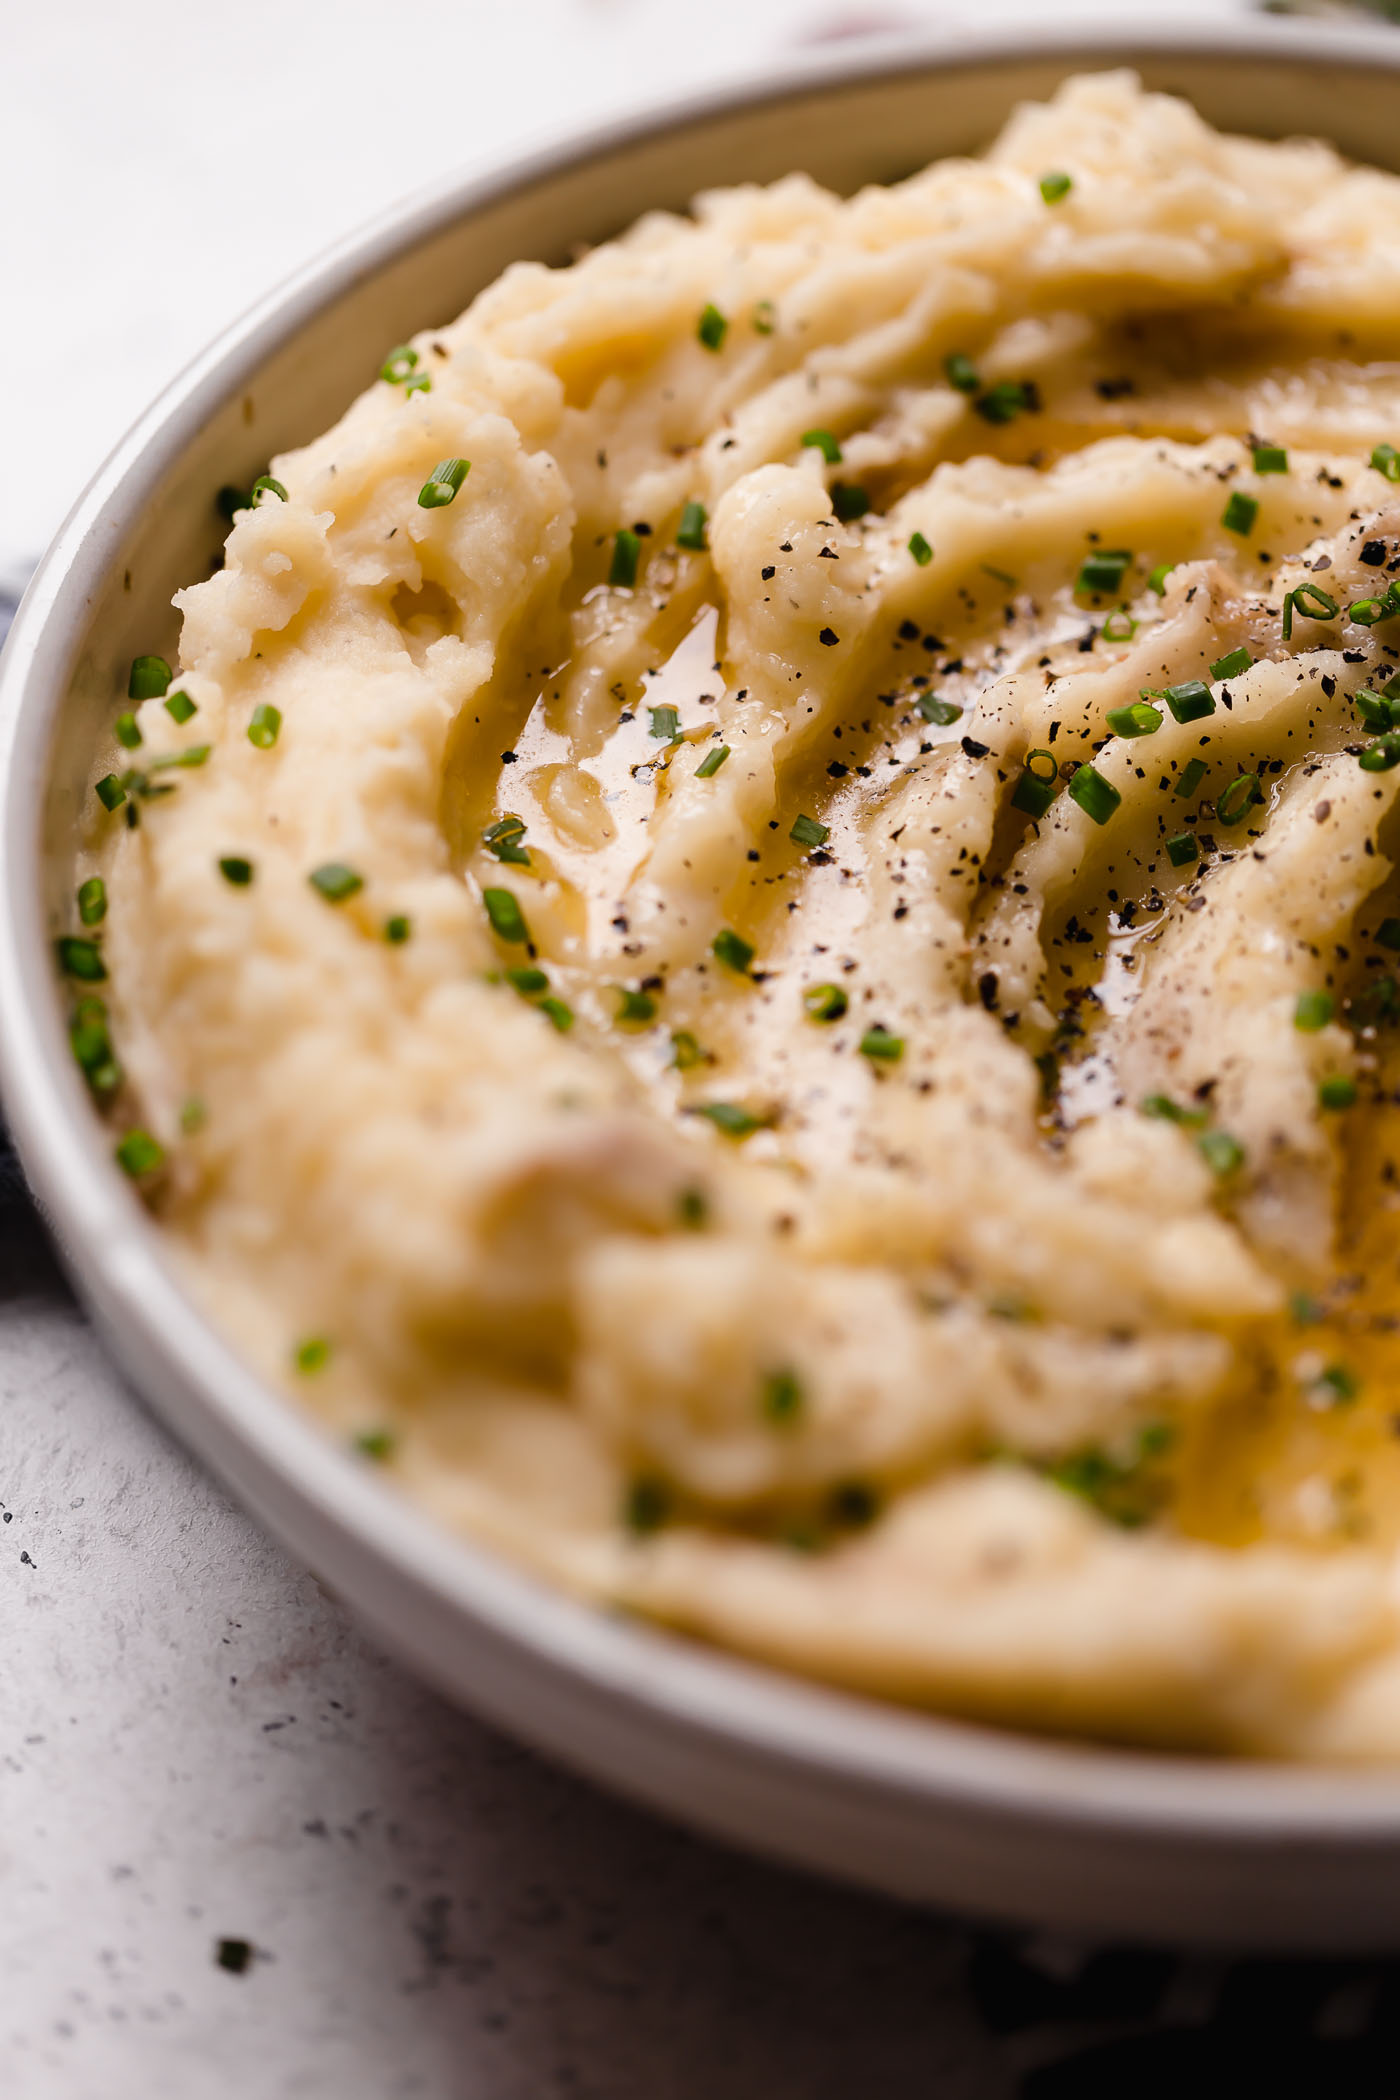 roasted garlic buttermilk mashed potatoes. an easy & ultra creamy roasted garlic buttermilk mashed potatoes recipe! yukon gold potatoes get mashed until perfectly creamy with butter & buttermilk, then finished with deeply caramelized roasted garlic. the perfect side dish for thanksgiving or any comfort food dinner! #playswellwithbutter #buttermilkmashedpotatoesrecipe #roastedgarlicbuttermilkmashedpotatoes #easymashedpotatoes #bestmashedpotatoes #thanksgivingsidedish #thanksgivingrecipe #comfortfood